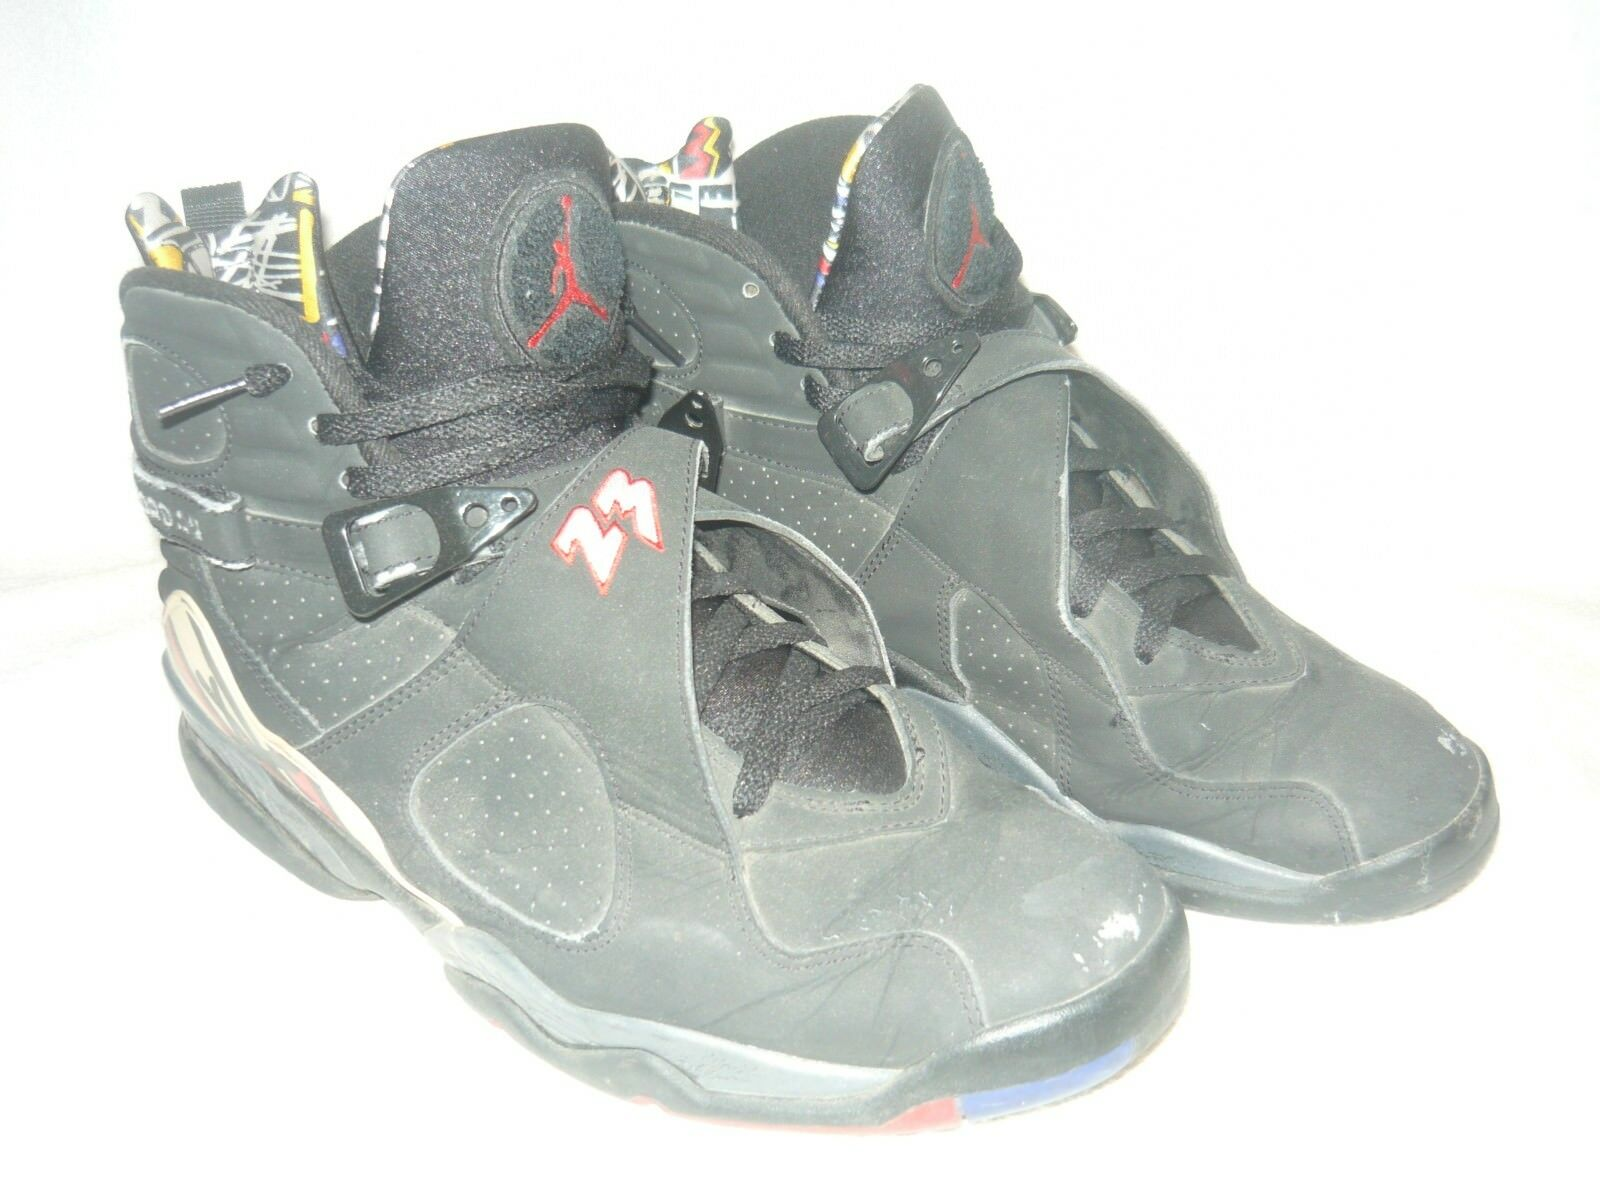 Nike Air Jordan VIII 8 retro 305381-061 size 12 Playoff 2007 edition The latest discount shoes for men and women